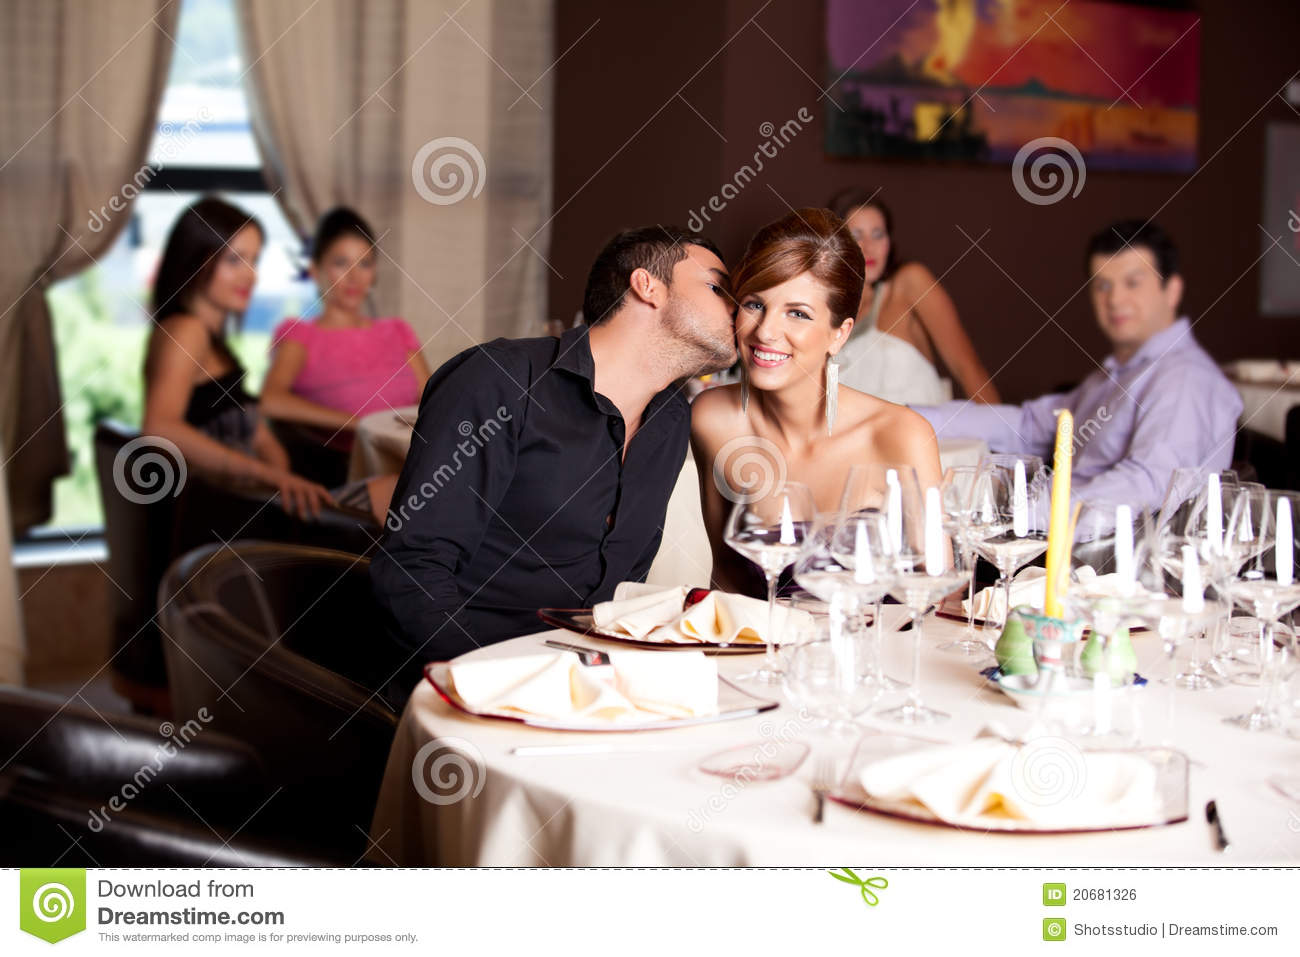 kiss free online dating Casual kiss is a well rounded and well populated free dating site offering a large number of additional features and contact options.